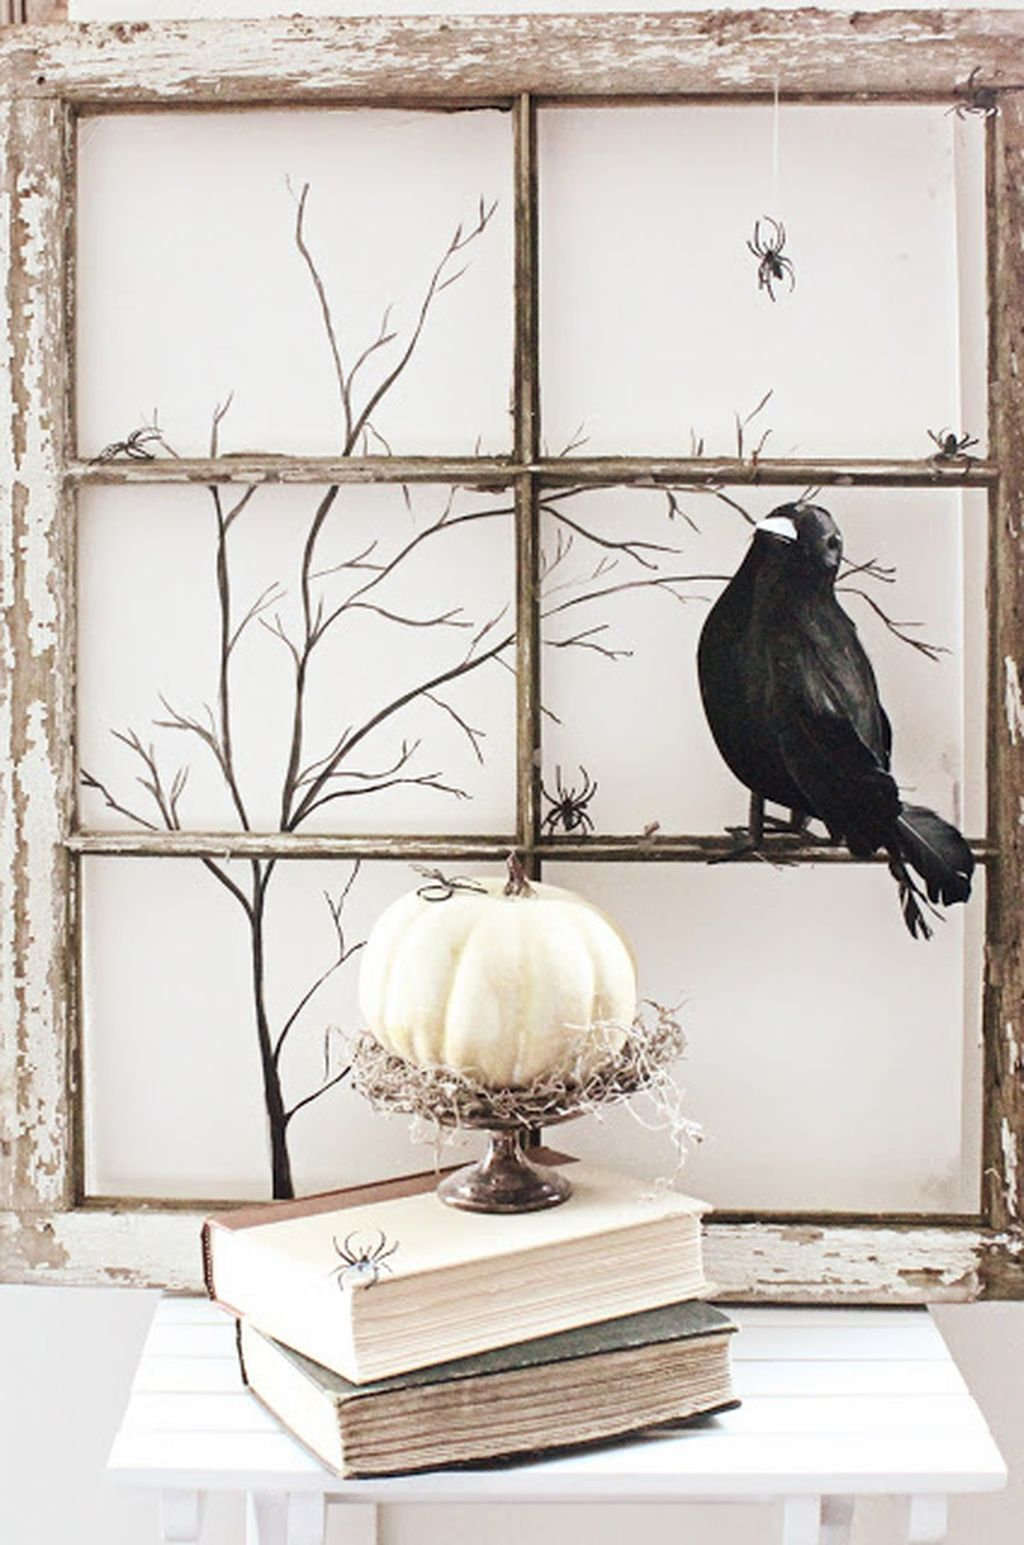 Scary But Creative DIY Halloween Window Decorations Ideas You Should Try 23